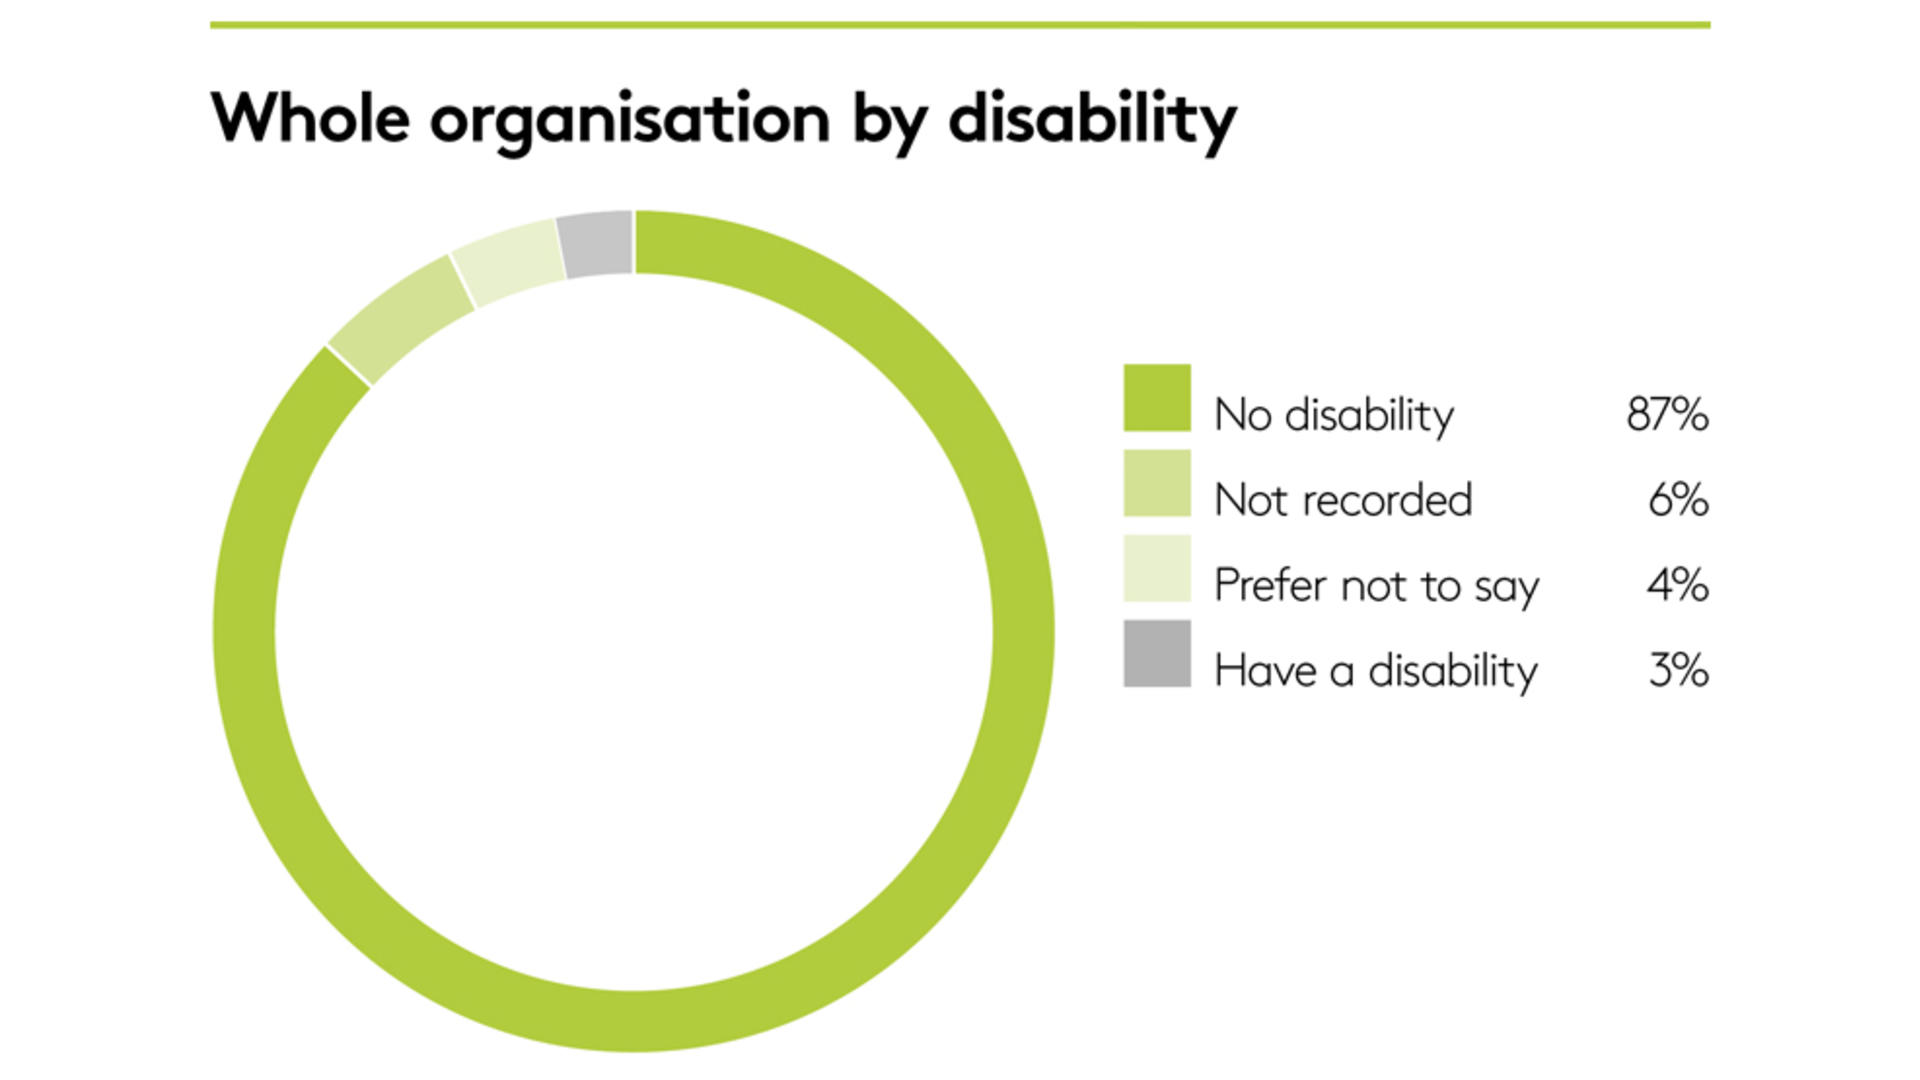 Whole organisation by disability